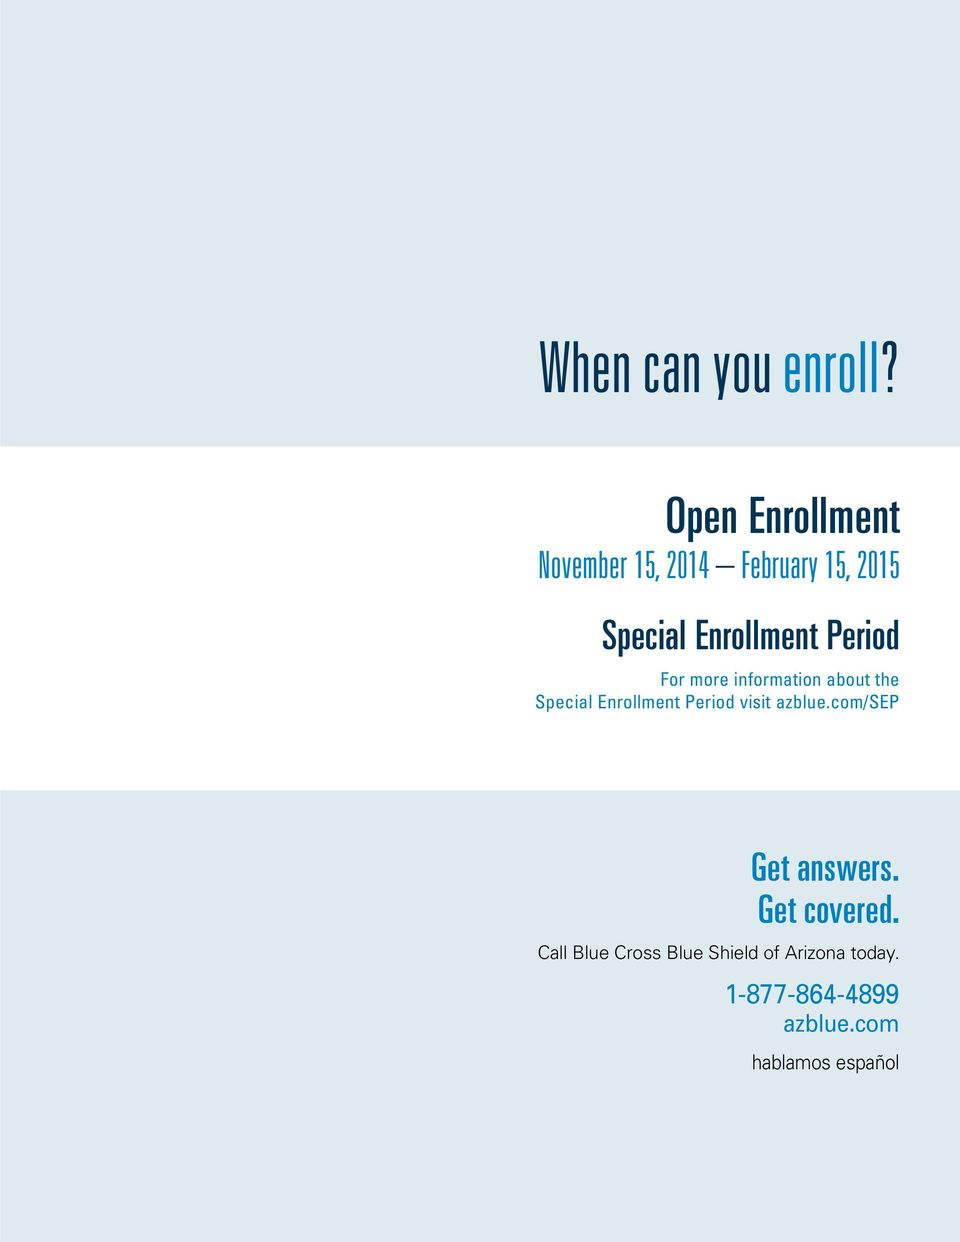 Enrollment Period For more information about the Special Enrollment